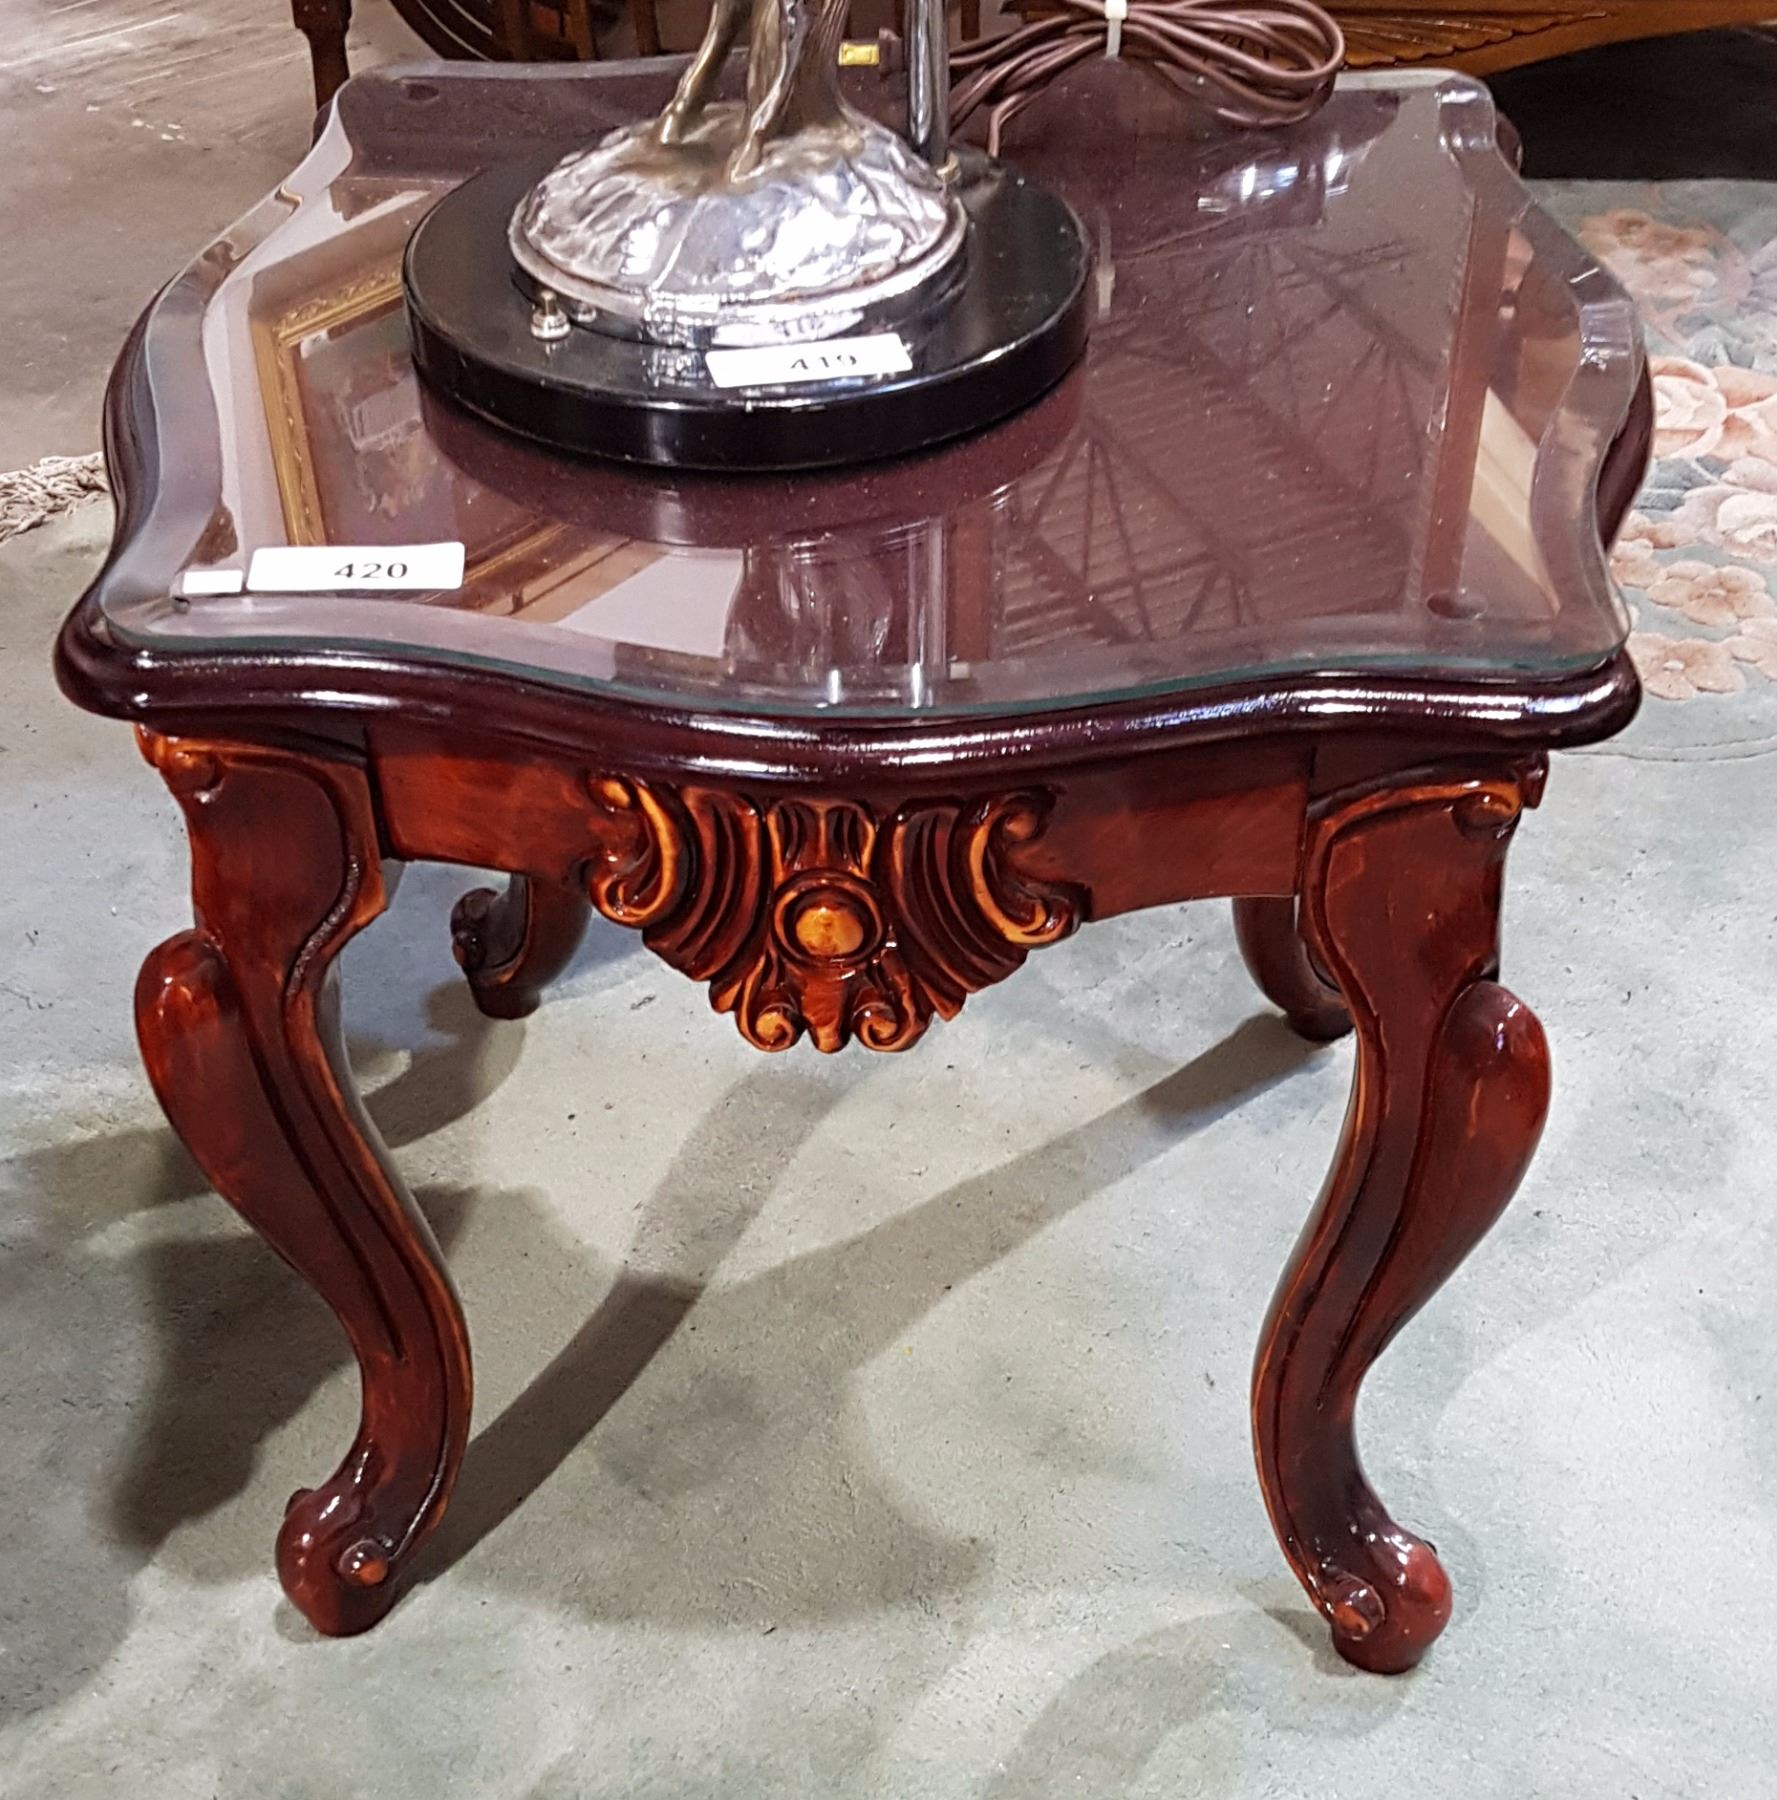 carved mahogany end table wglass top - Antique Mahogany End Tables